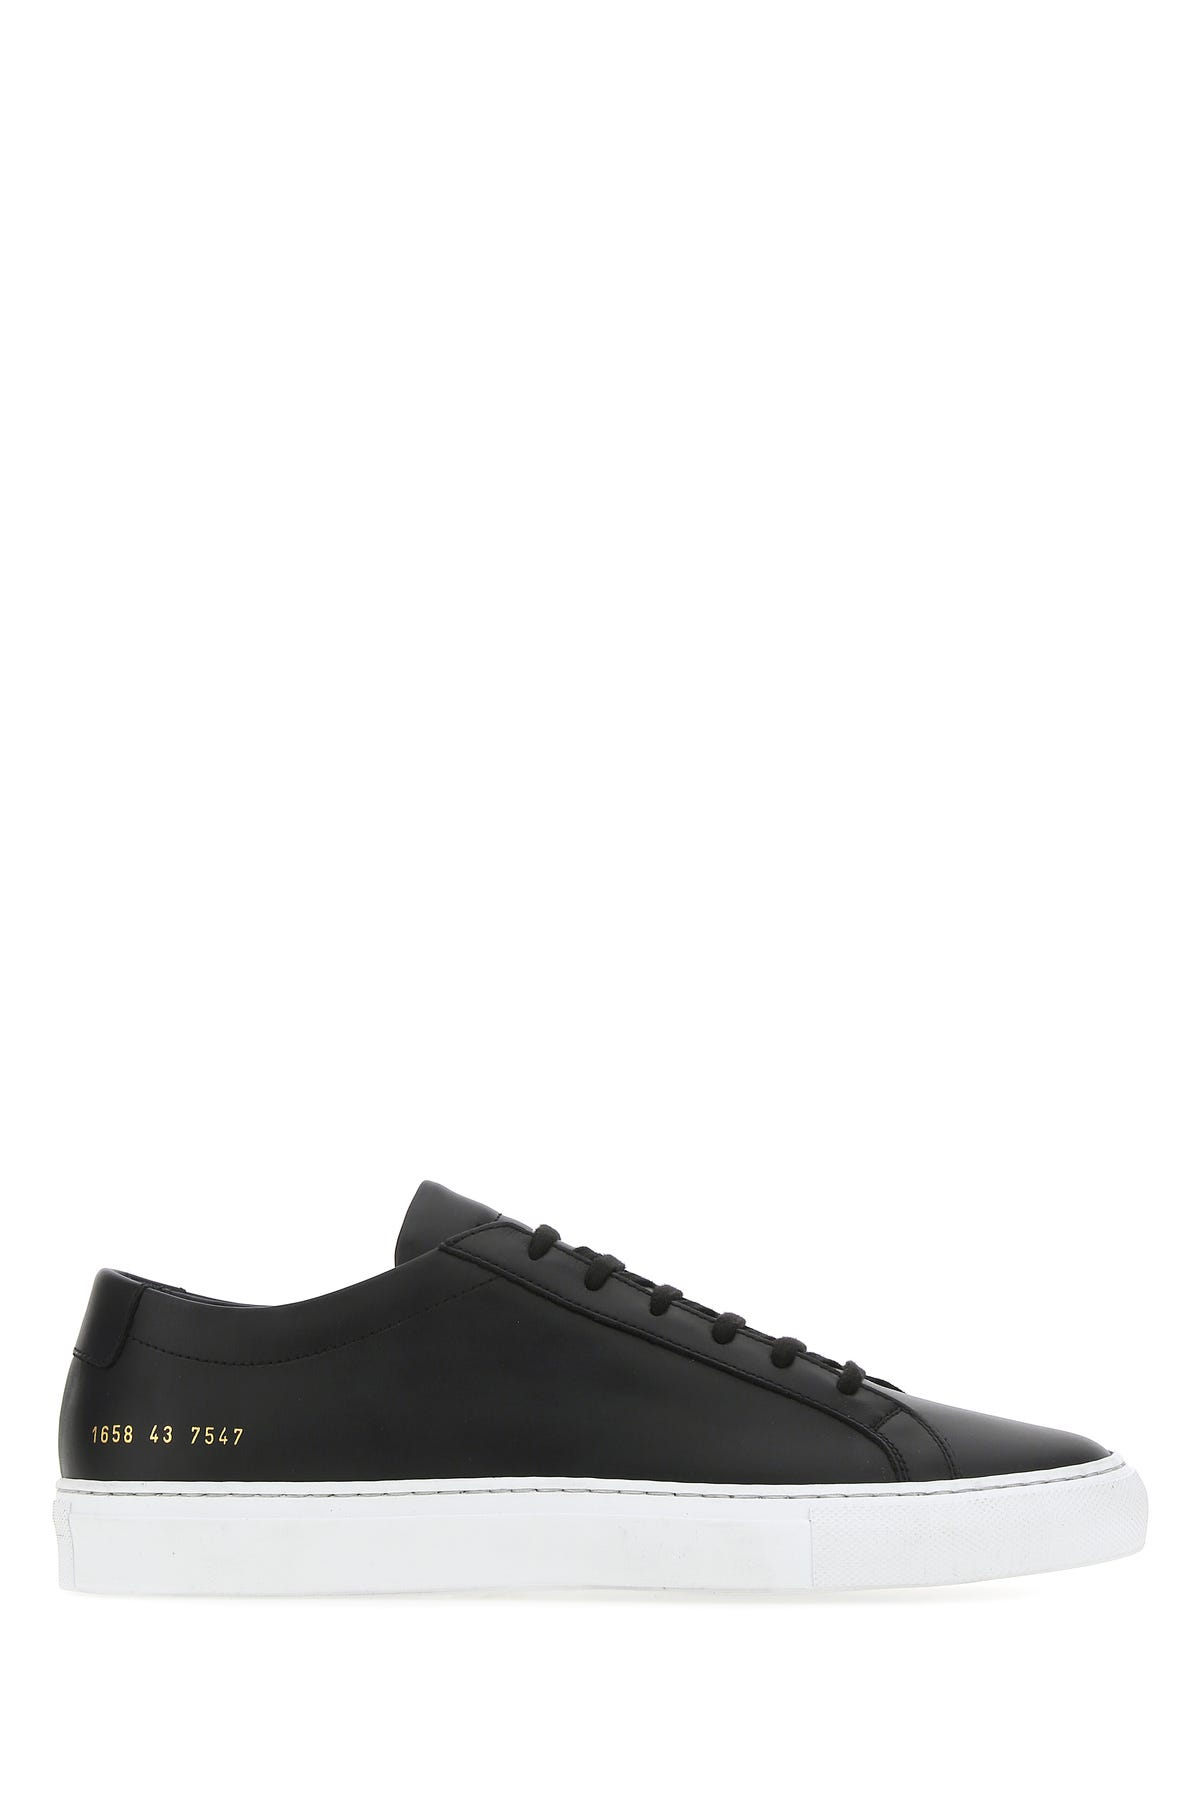 Common Projects BLACK LEATHER ACHILLES SNEAKERS  BLACK COMMON PROJECTS UOMO 43